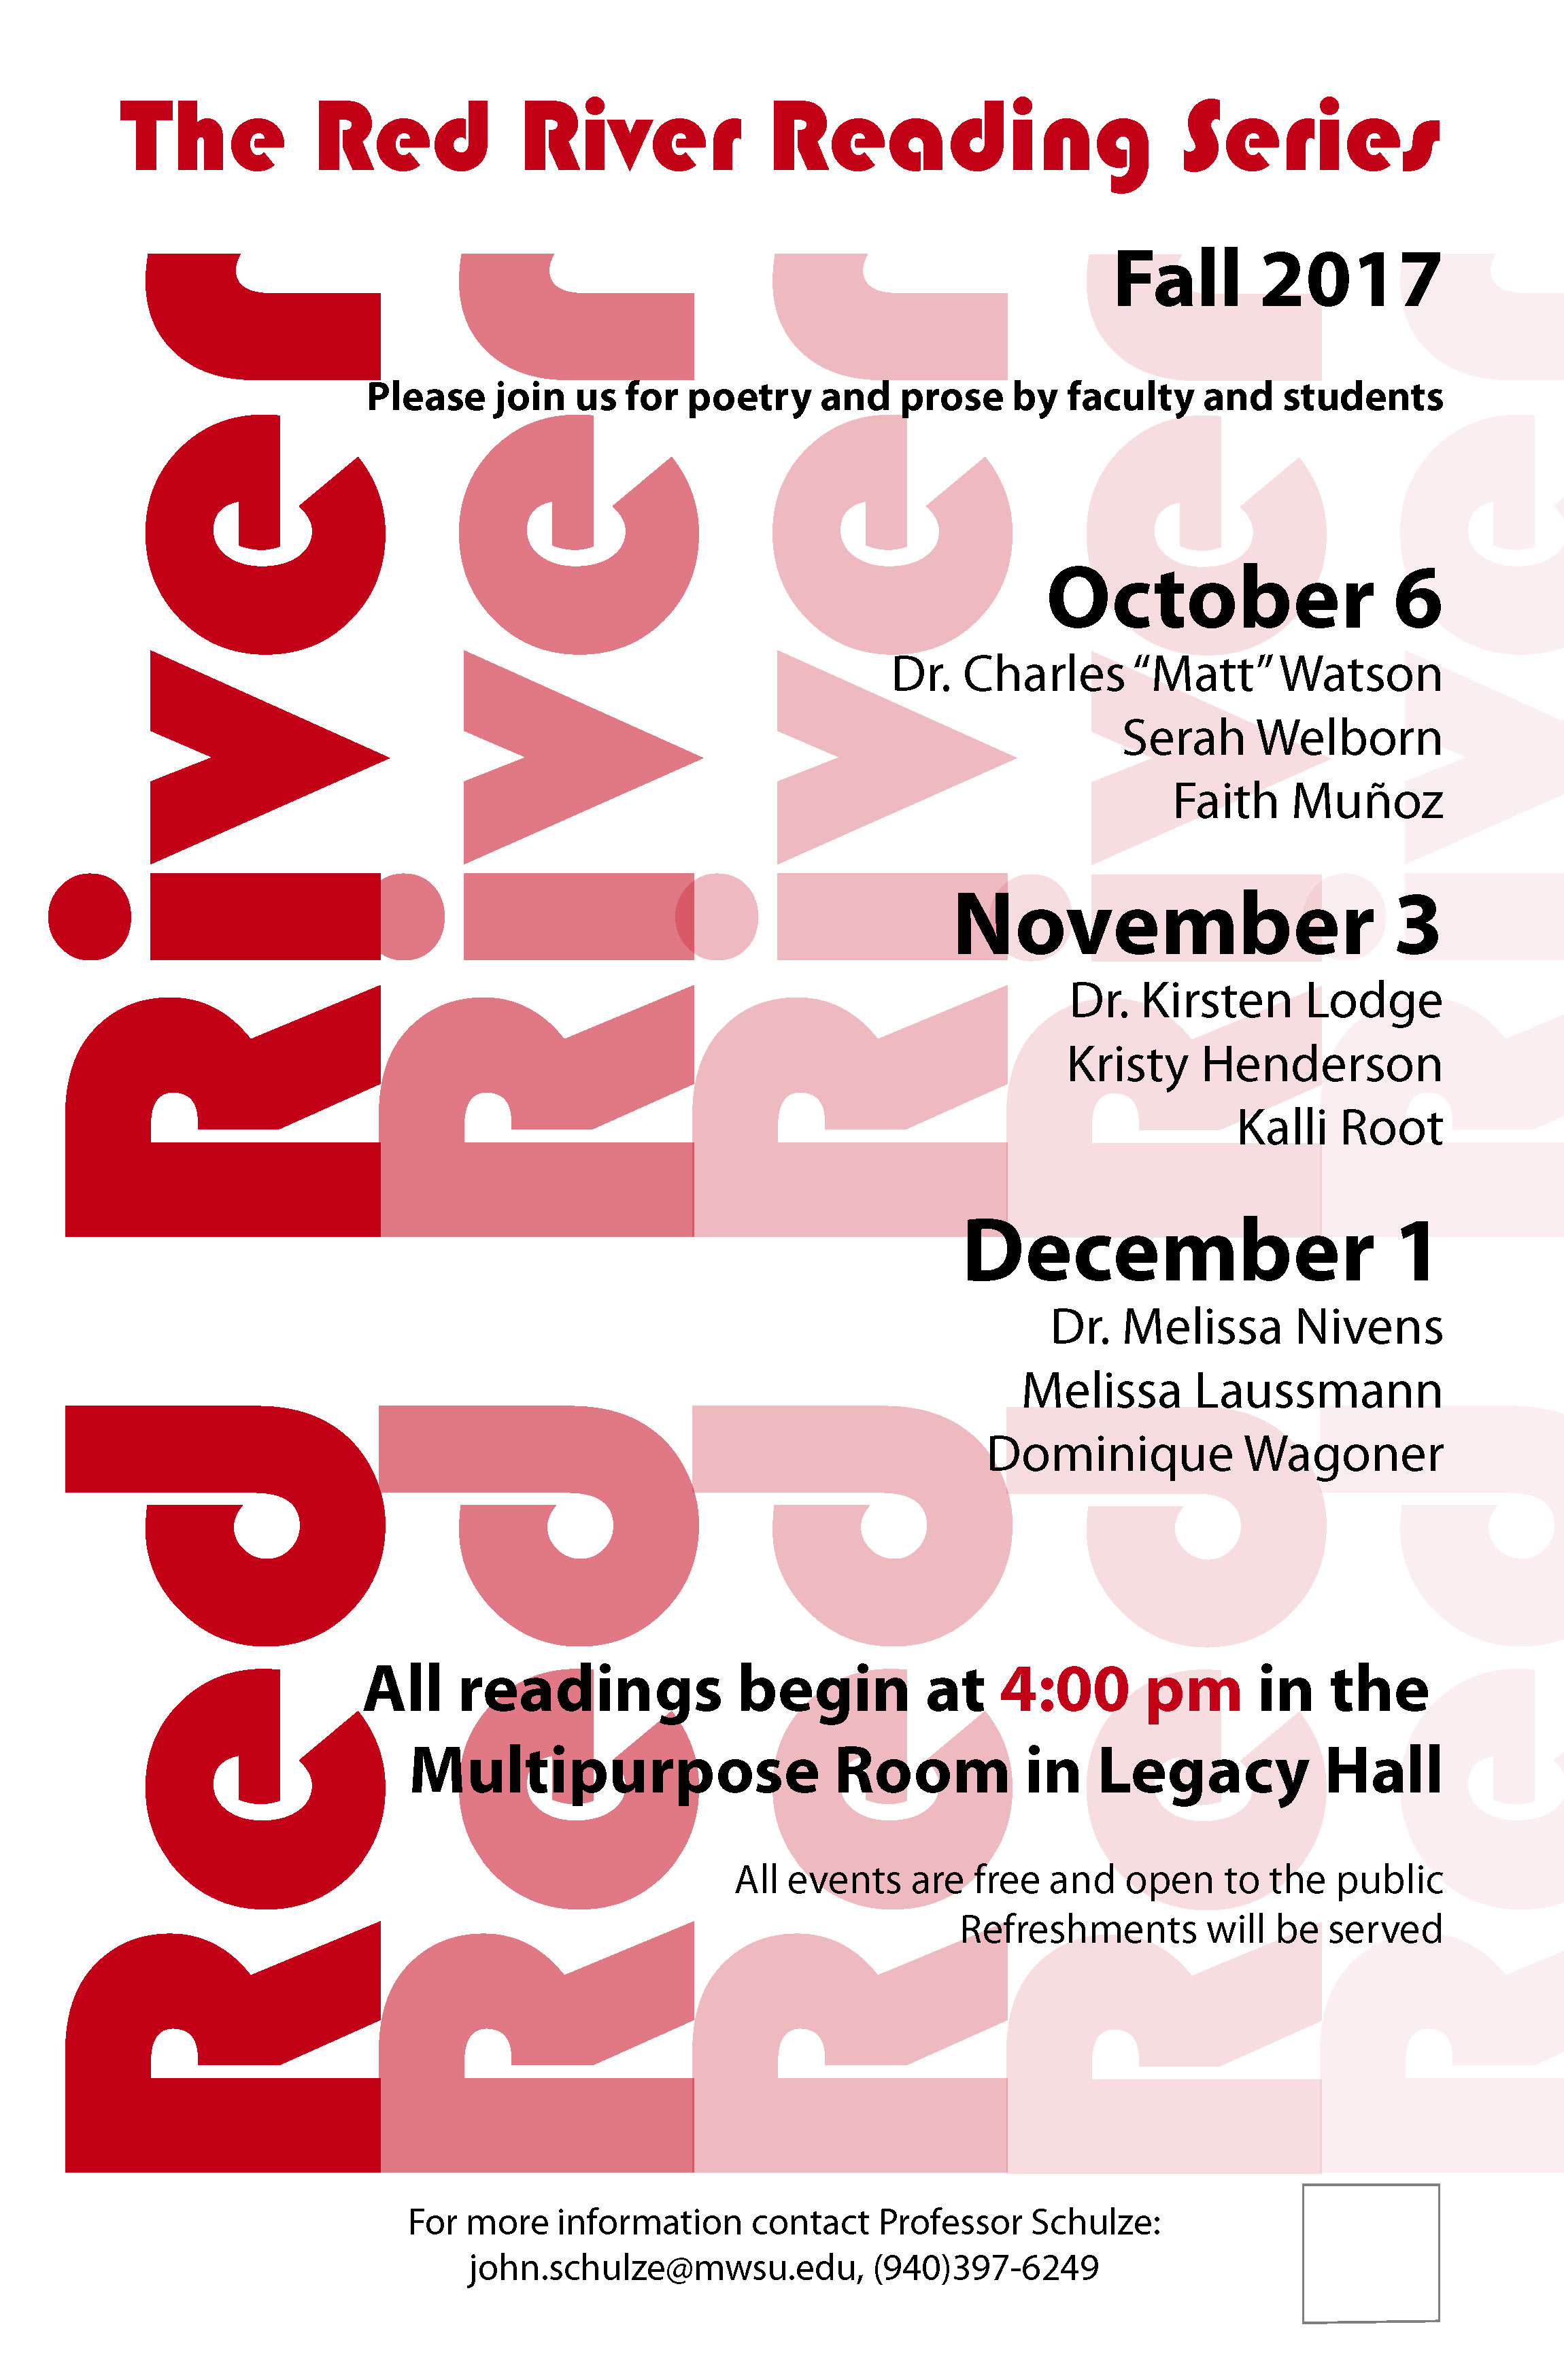 Midwestern State University Red River Reading Series